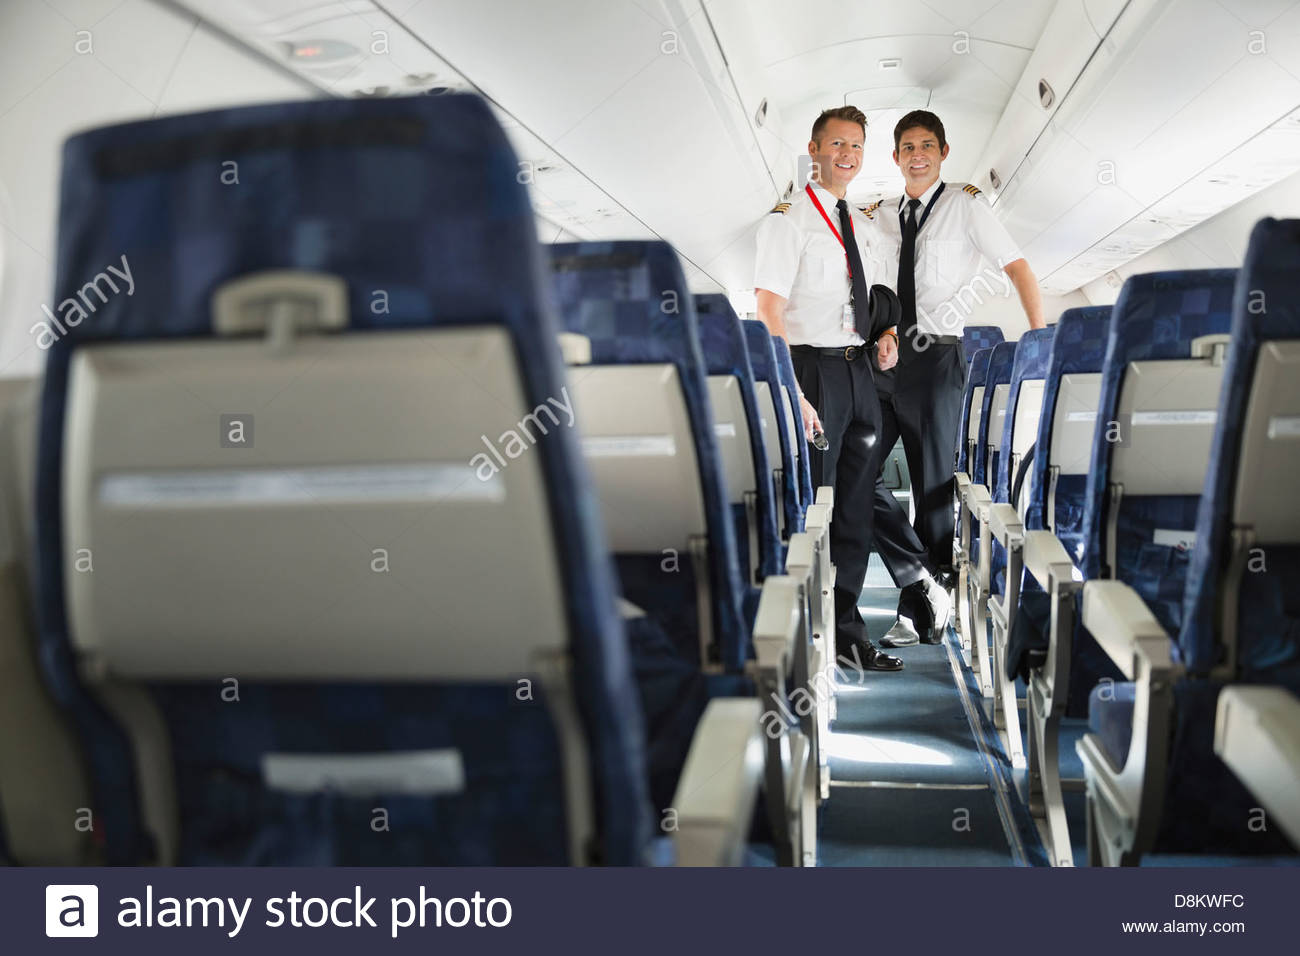 Portrait of male pilot and co-pilot standing in airplane cabin - Stock Image